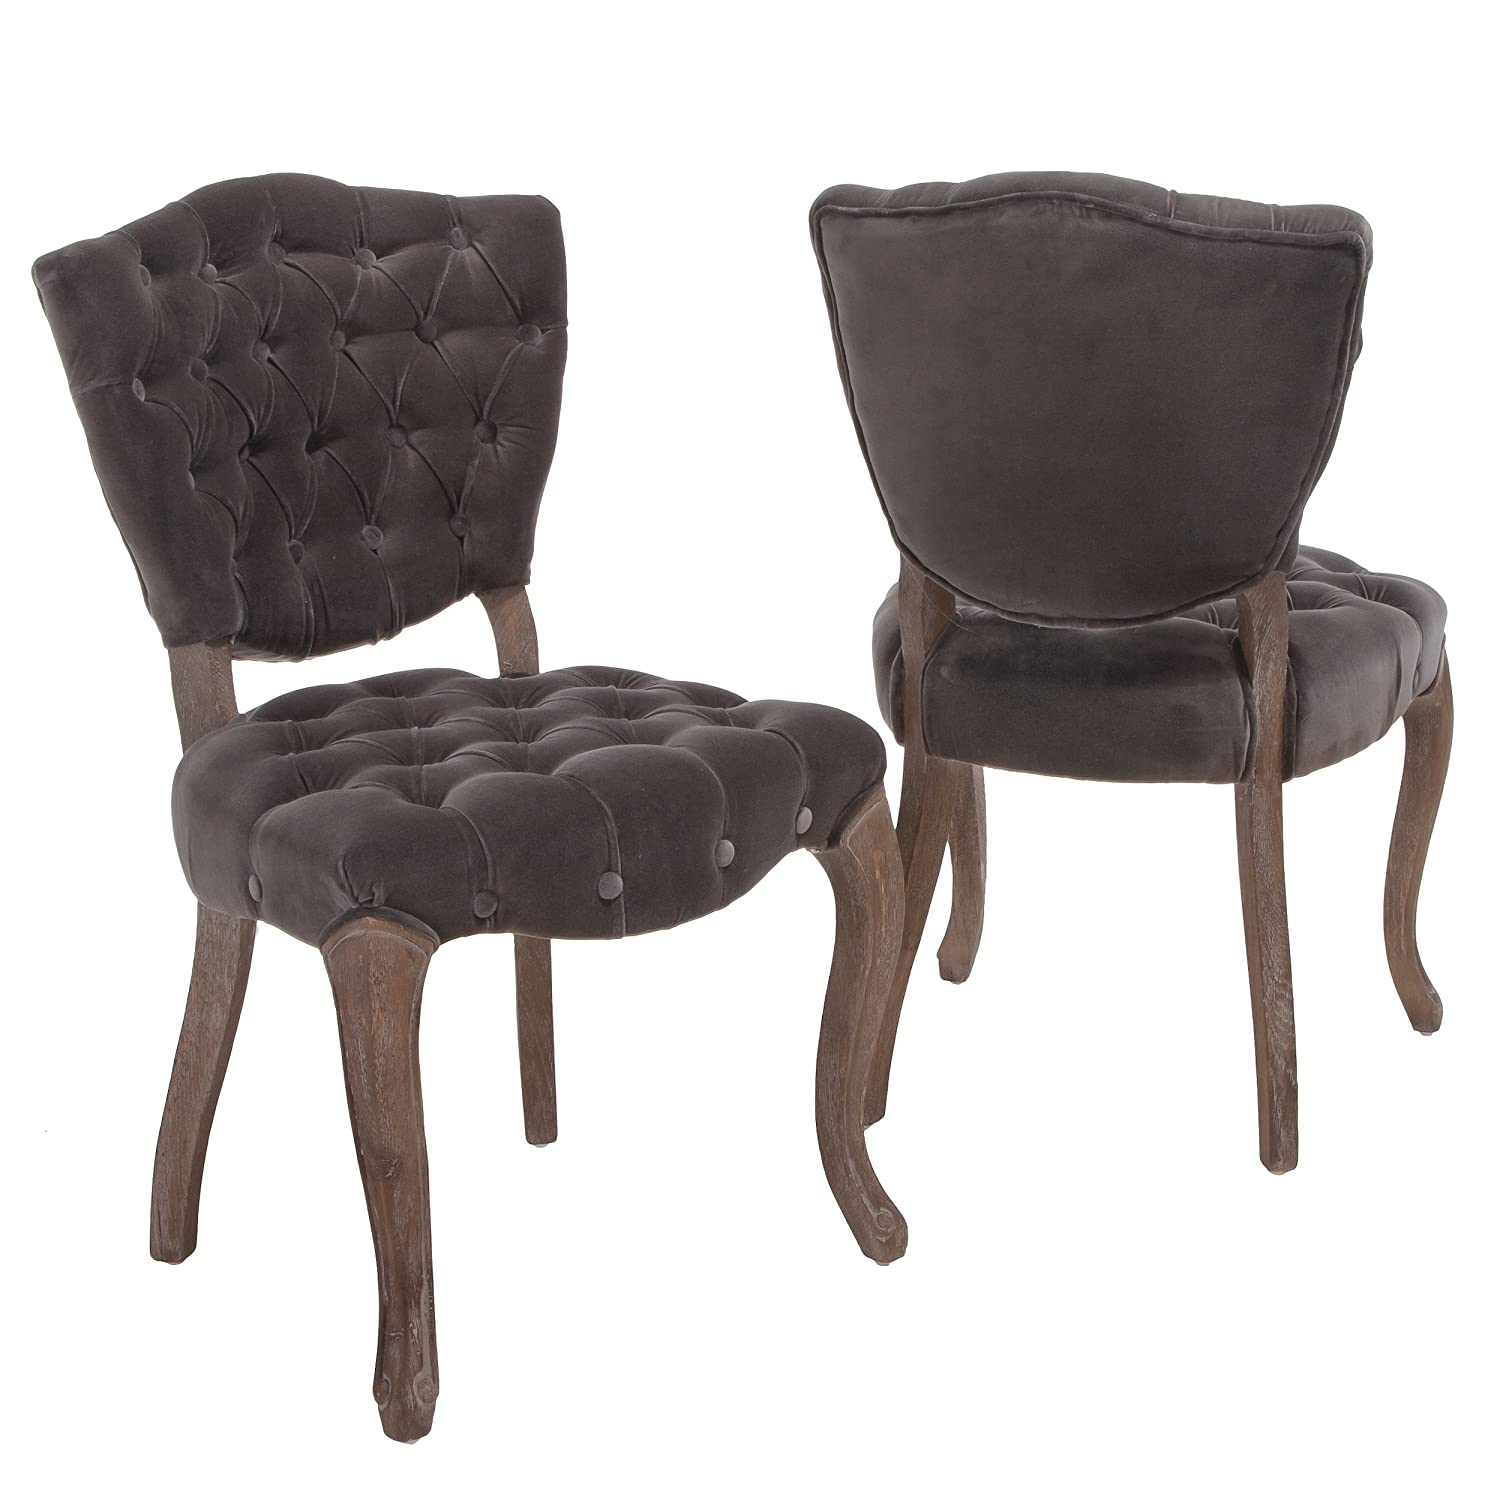 Amazon Violetta Tufted Charcoal Fabric Dining Chairs Set of